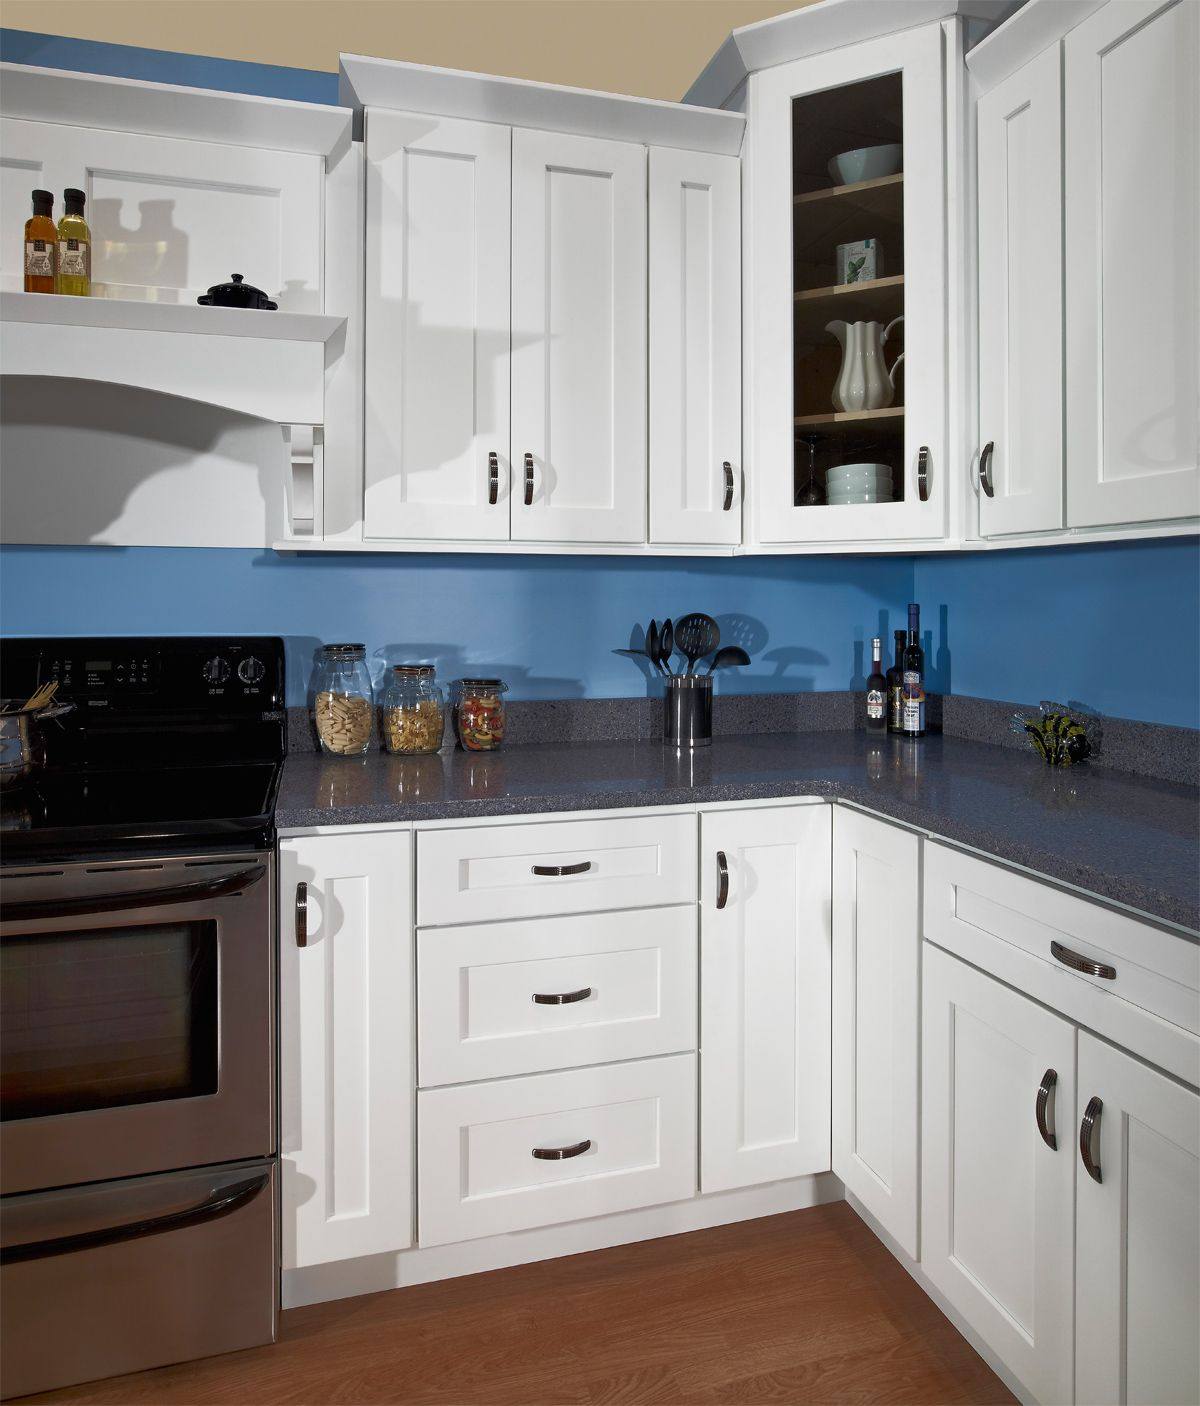 Kitchen Cabinets For Sale: White Shaker- Different Color Backsplash Would Look Better